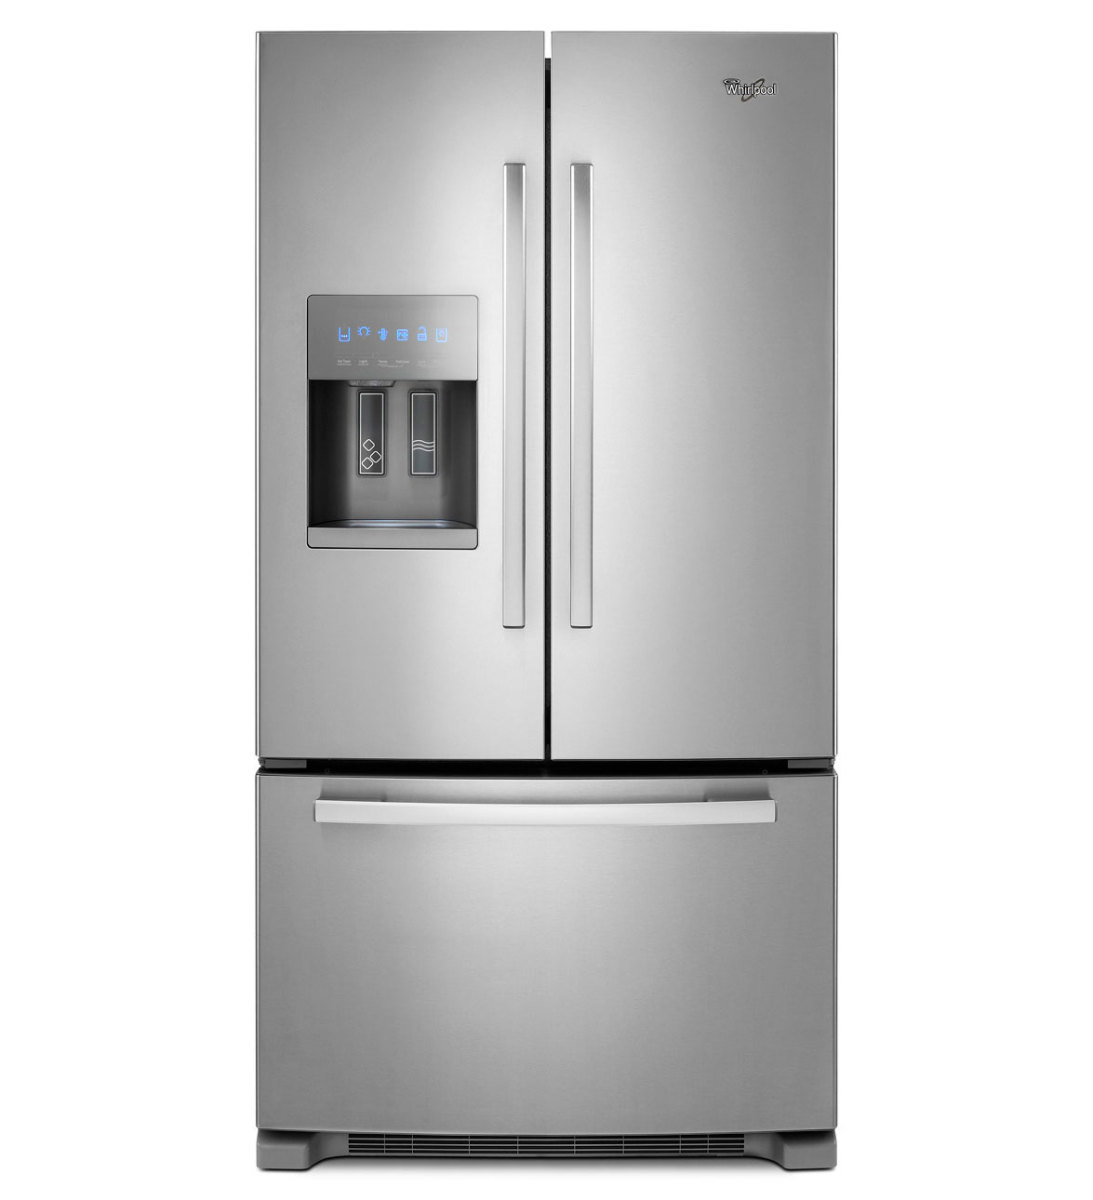 Causes and relationship of failures of household refrigerators